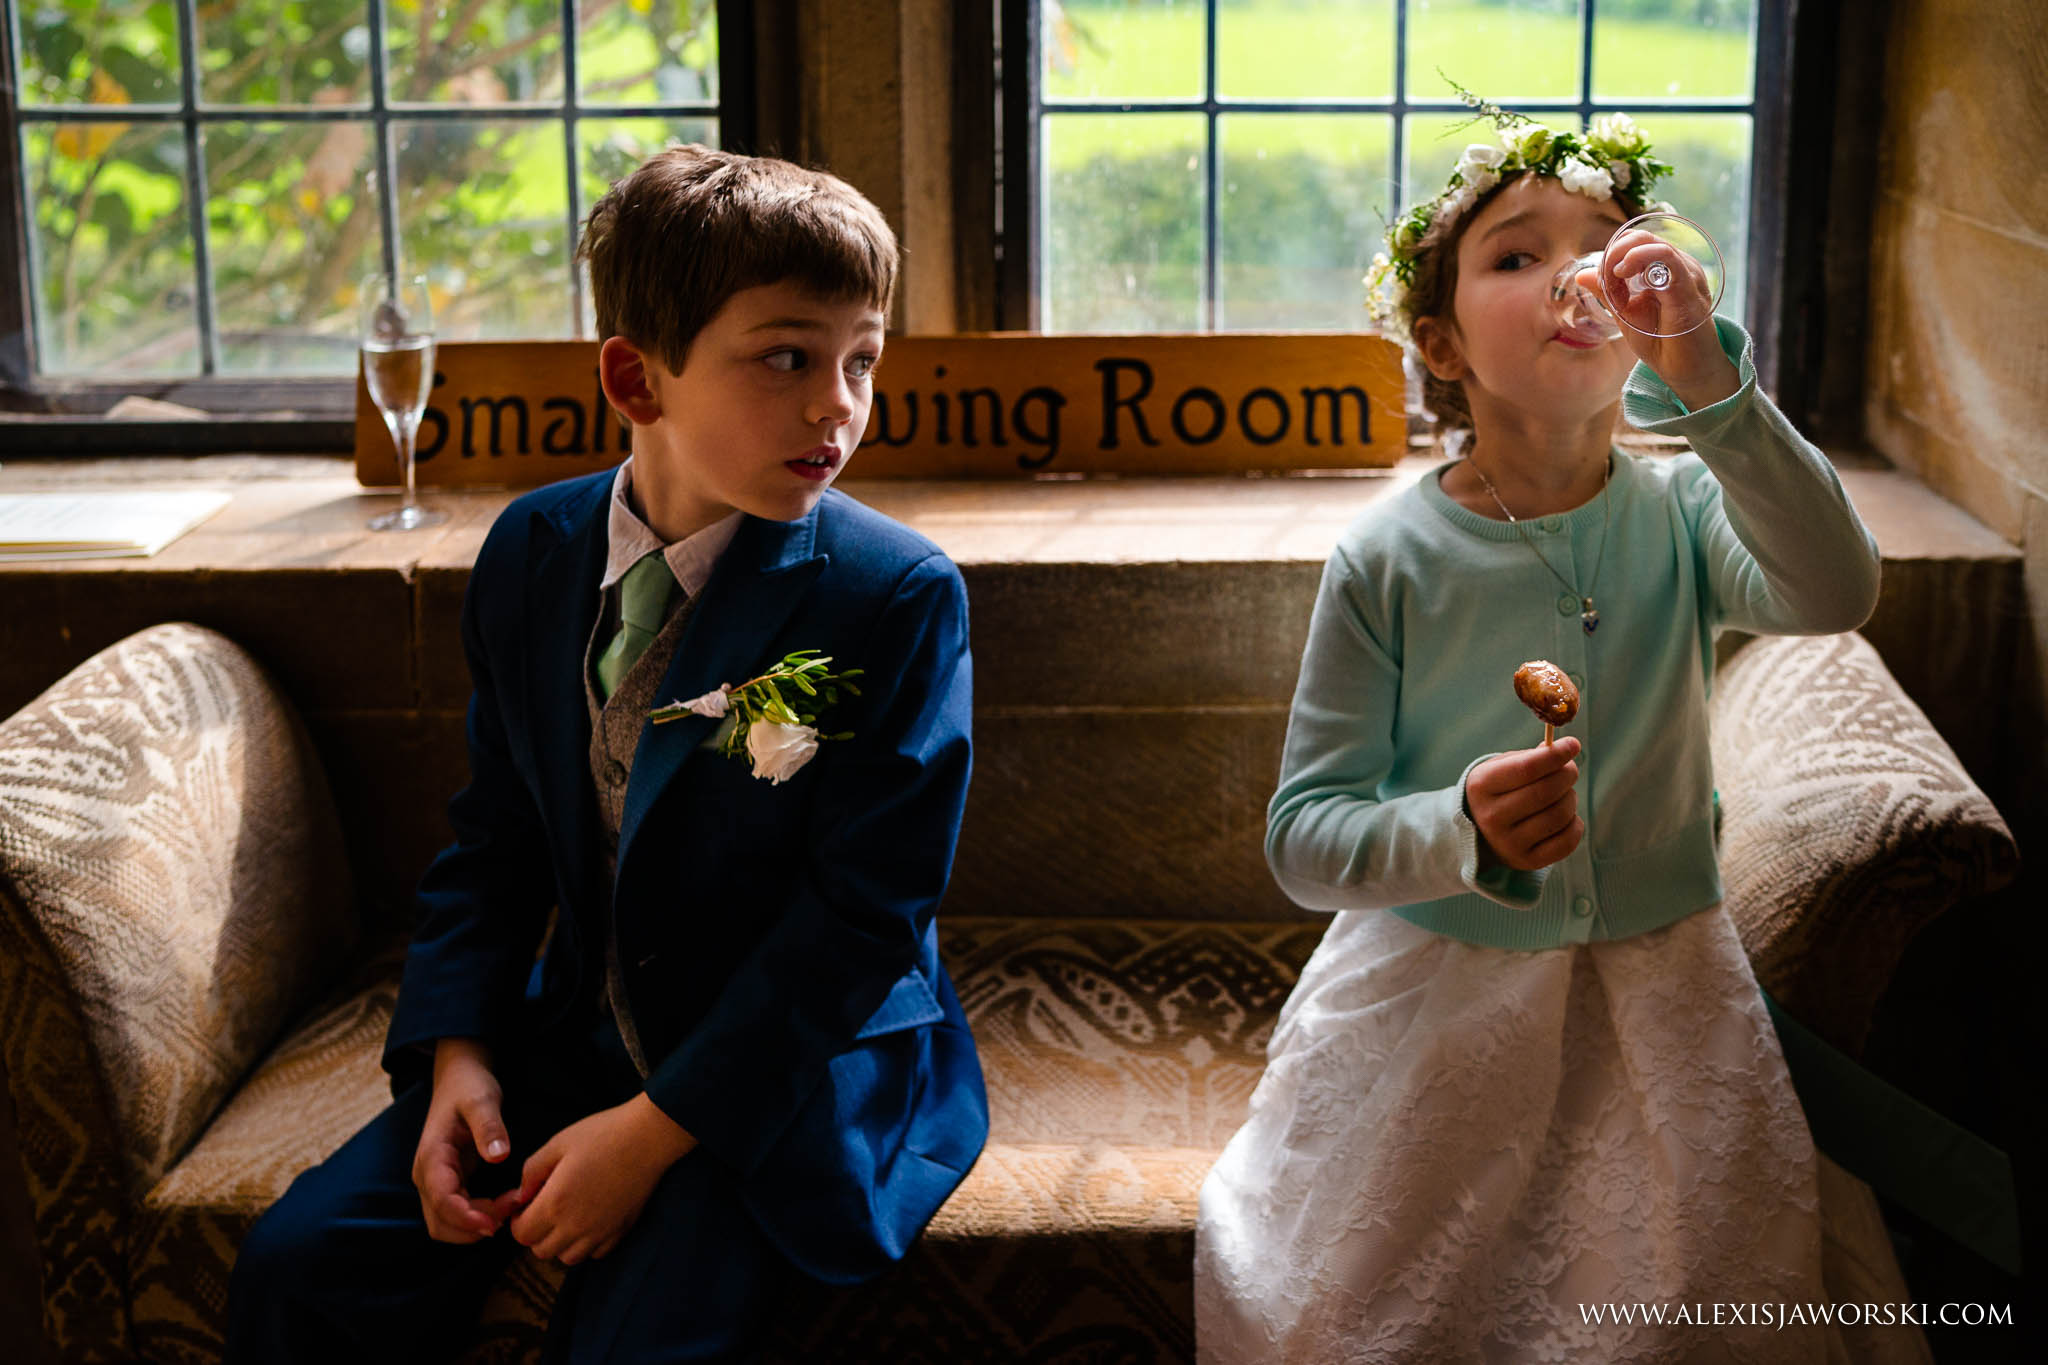 kids during the wedding recpetion